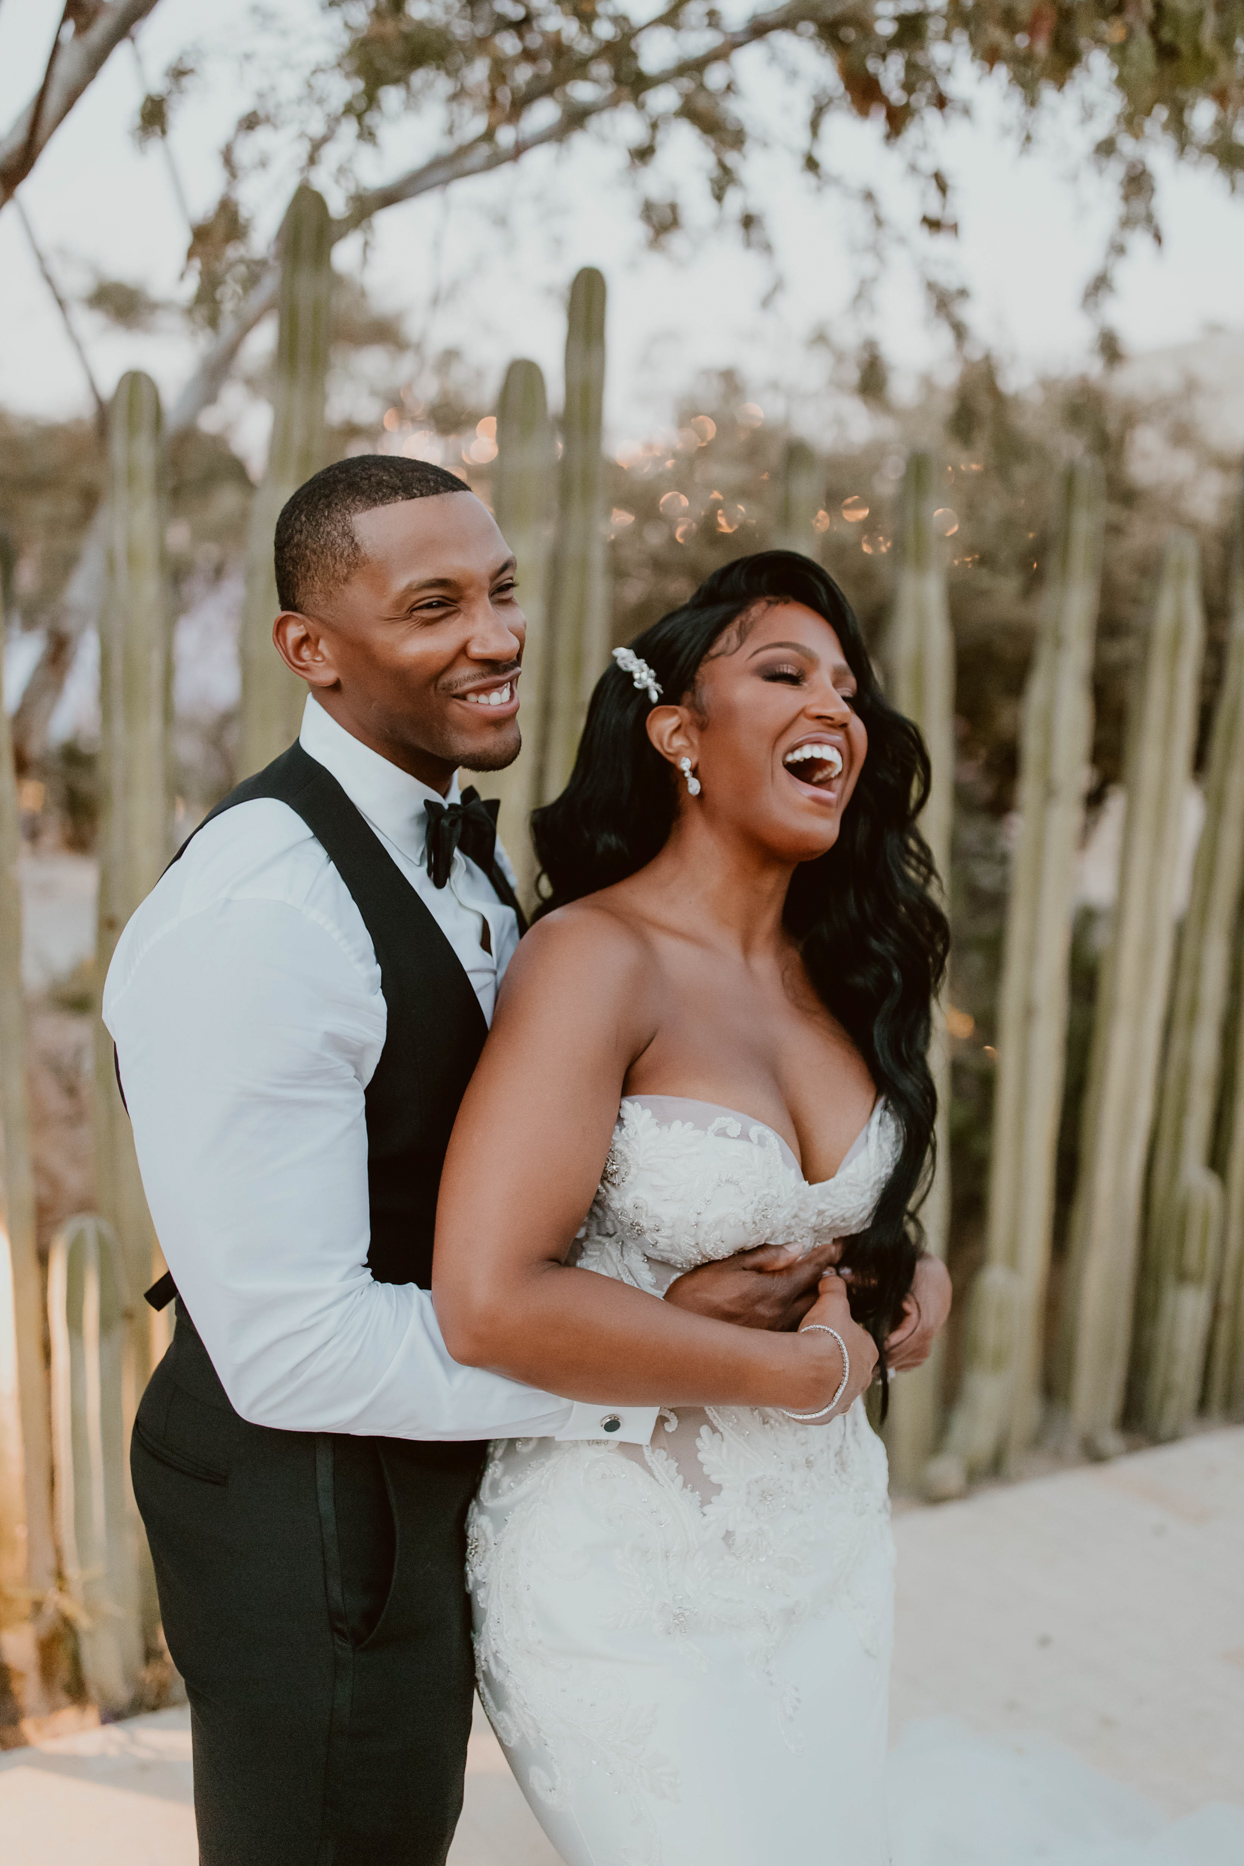 couple embracing and laughing at wedding reception